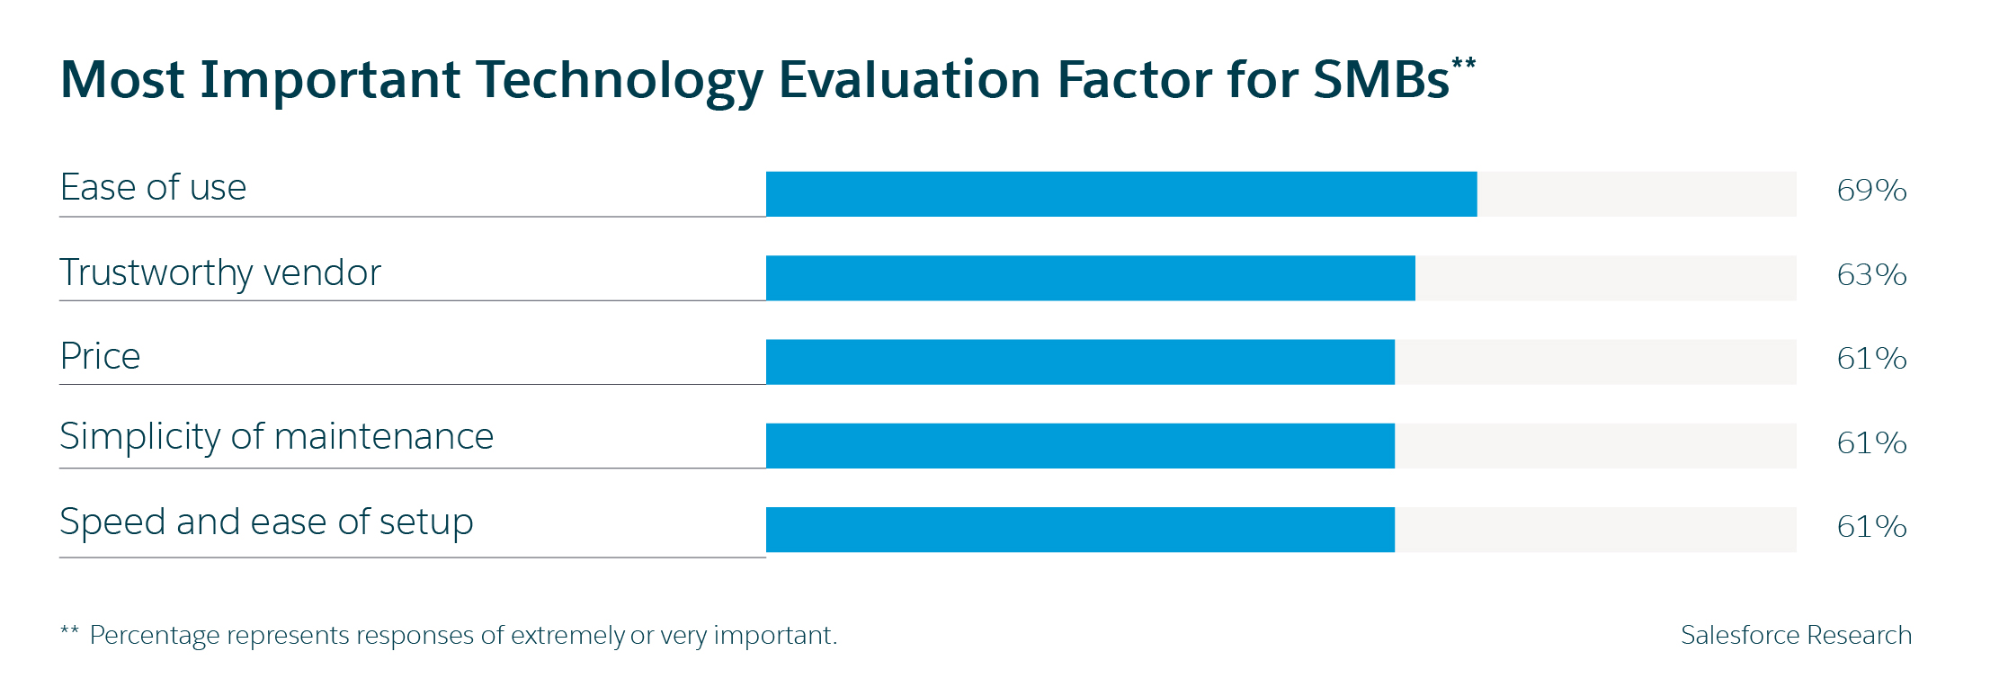 Most important technology evaluation factors for SMBs